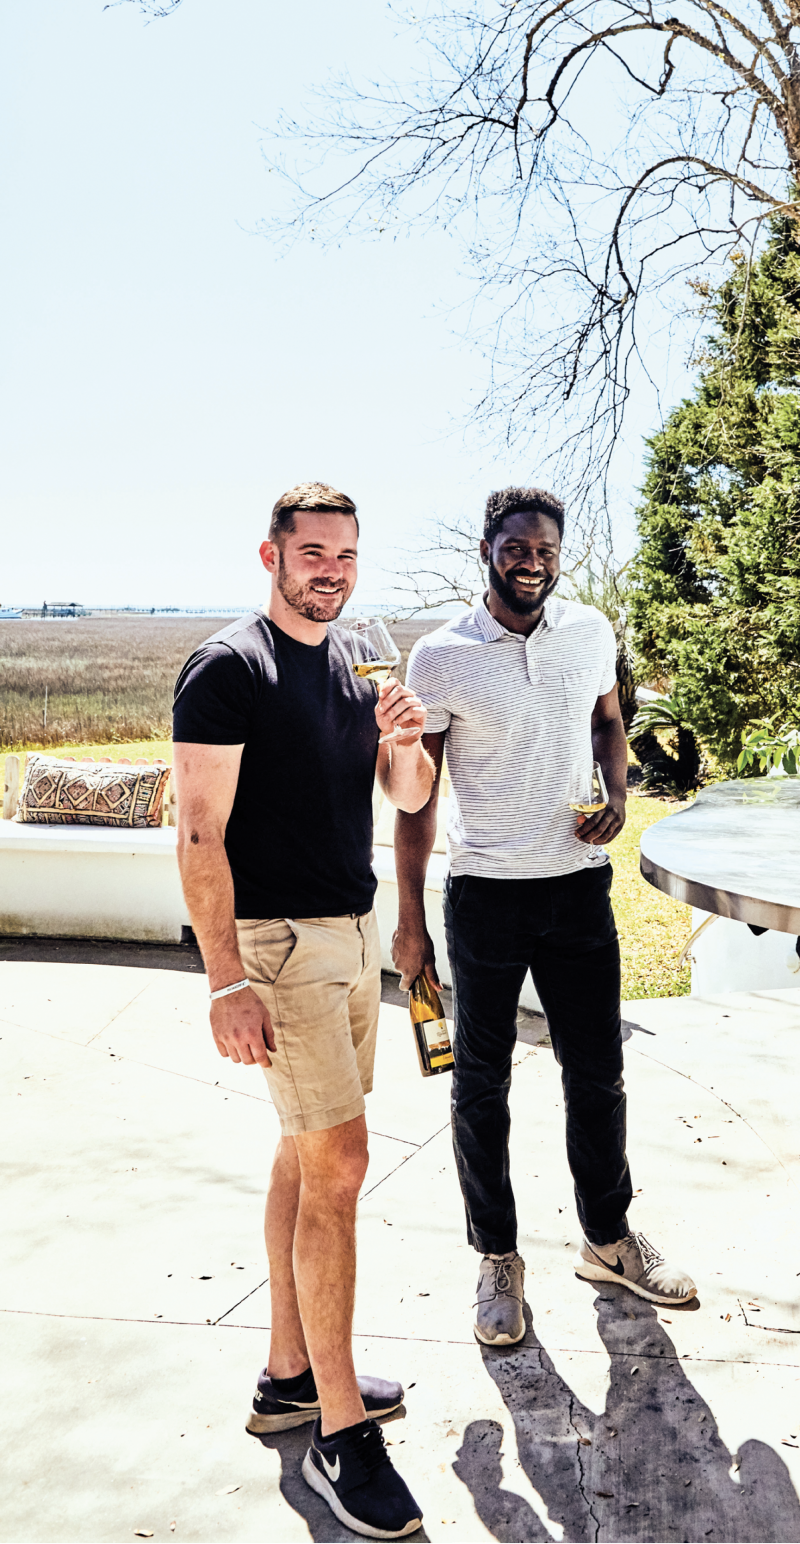 Miles and Femi first became friends while working at the Charleston Grill, under sommelier Rick Rubel's tutelage.